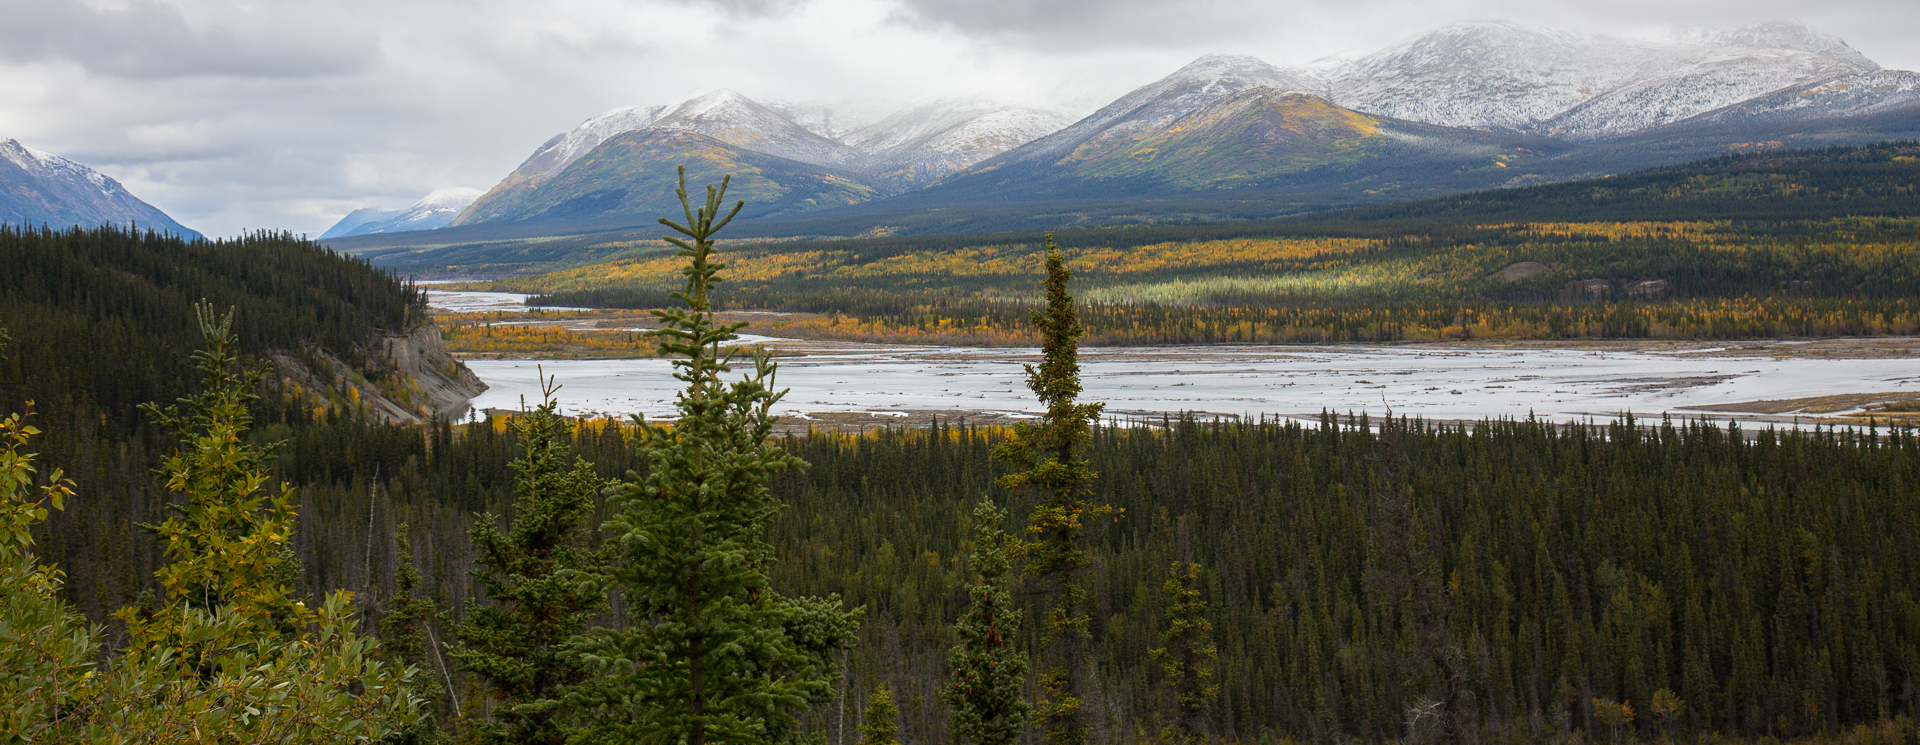 Spectacular view over the Kluane River.